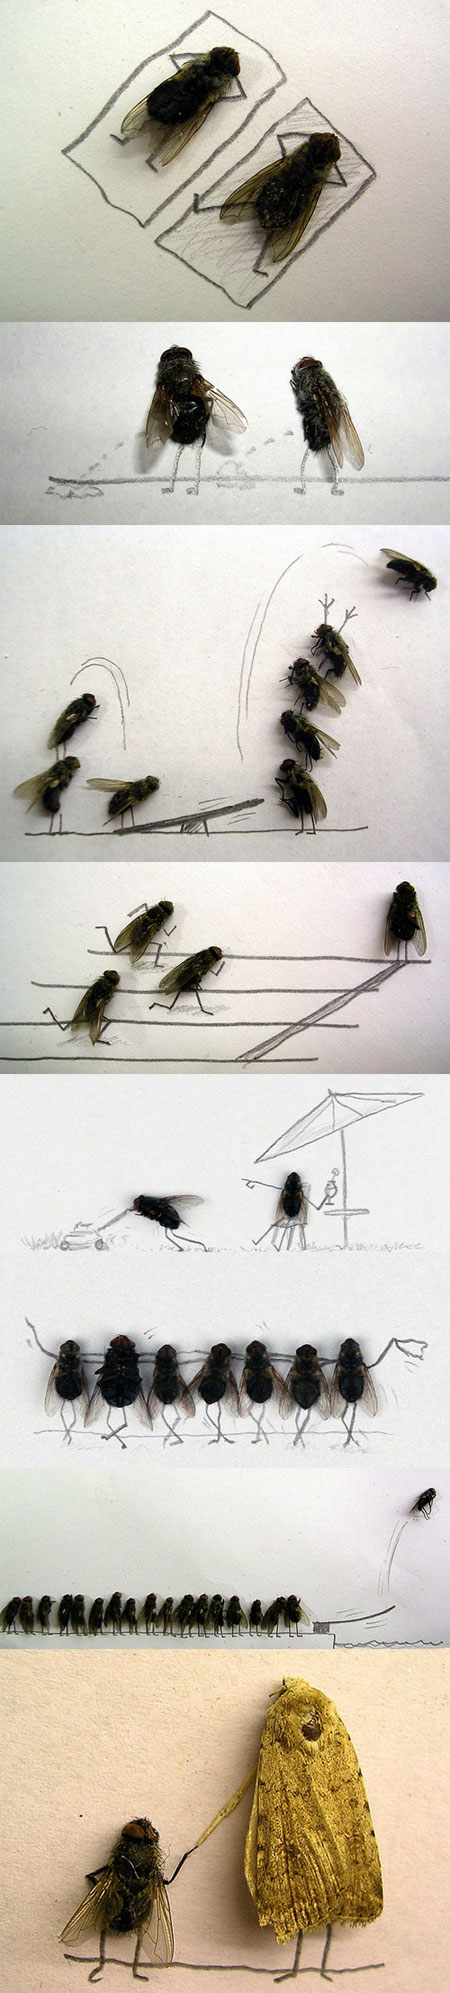 Flies, they know how to have fun